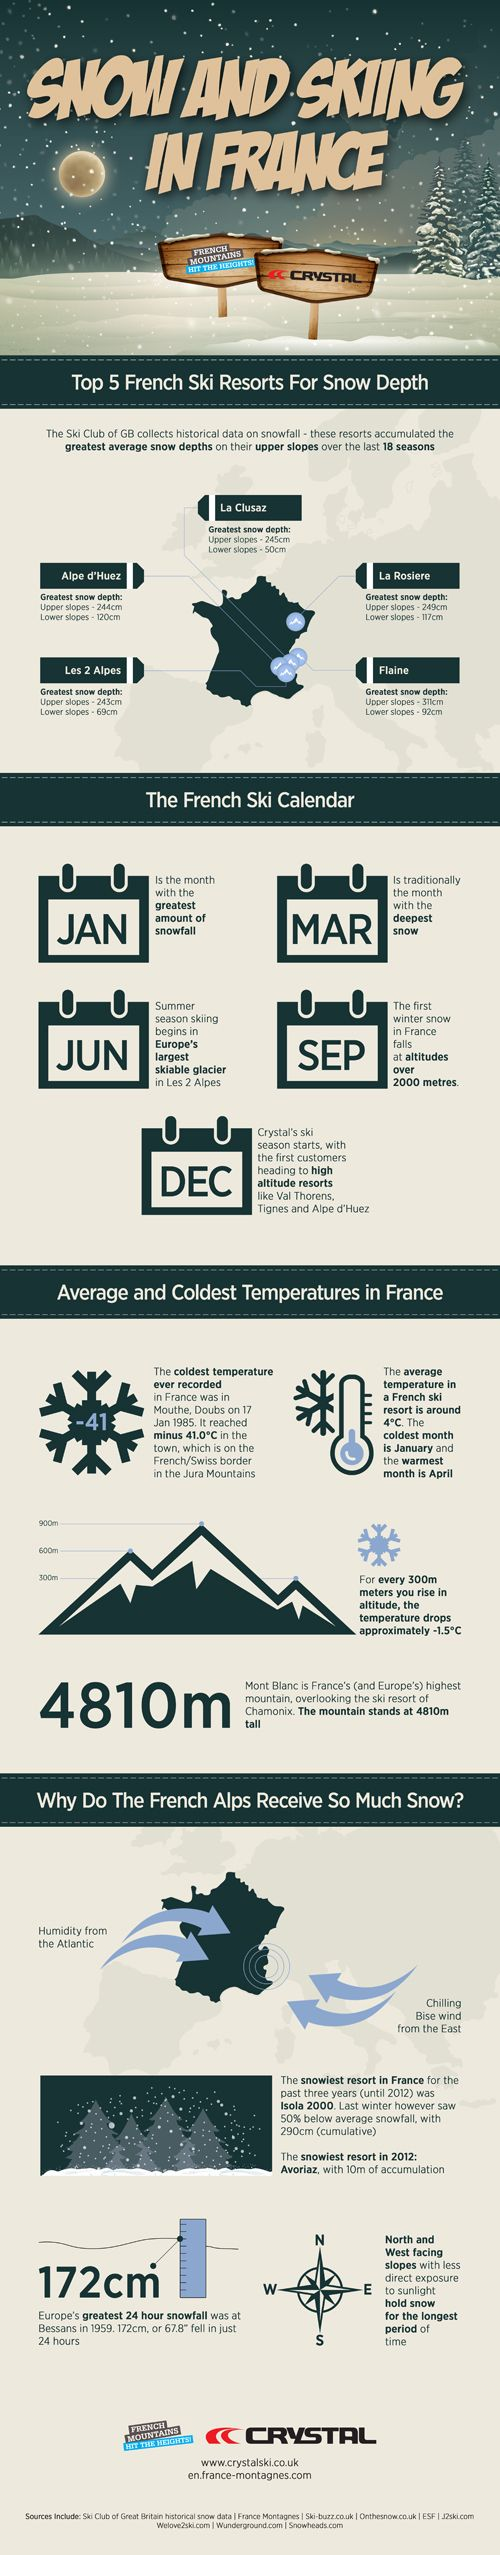 Our visual guide to snow and skiing in France #infographics  Via                                                  http://www.ski-buzz.co.uk/2013/01/21/a-visual-guide-to-skiing-in-france/